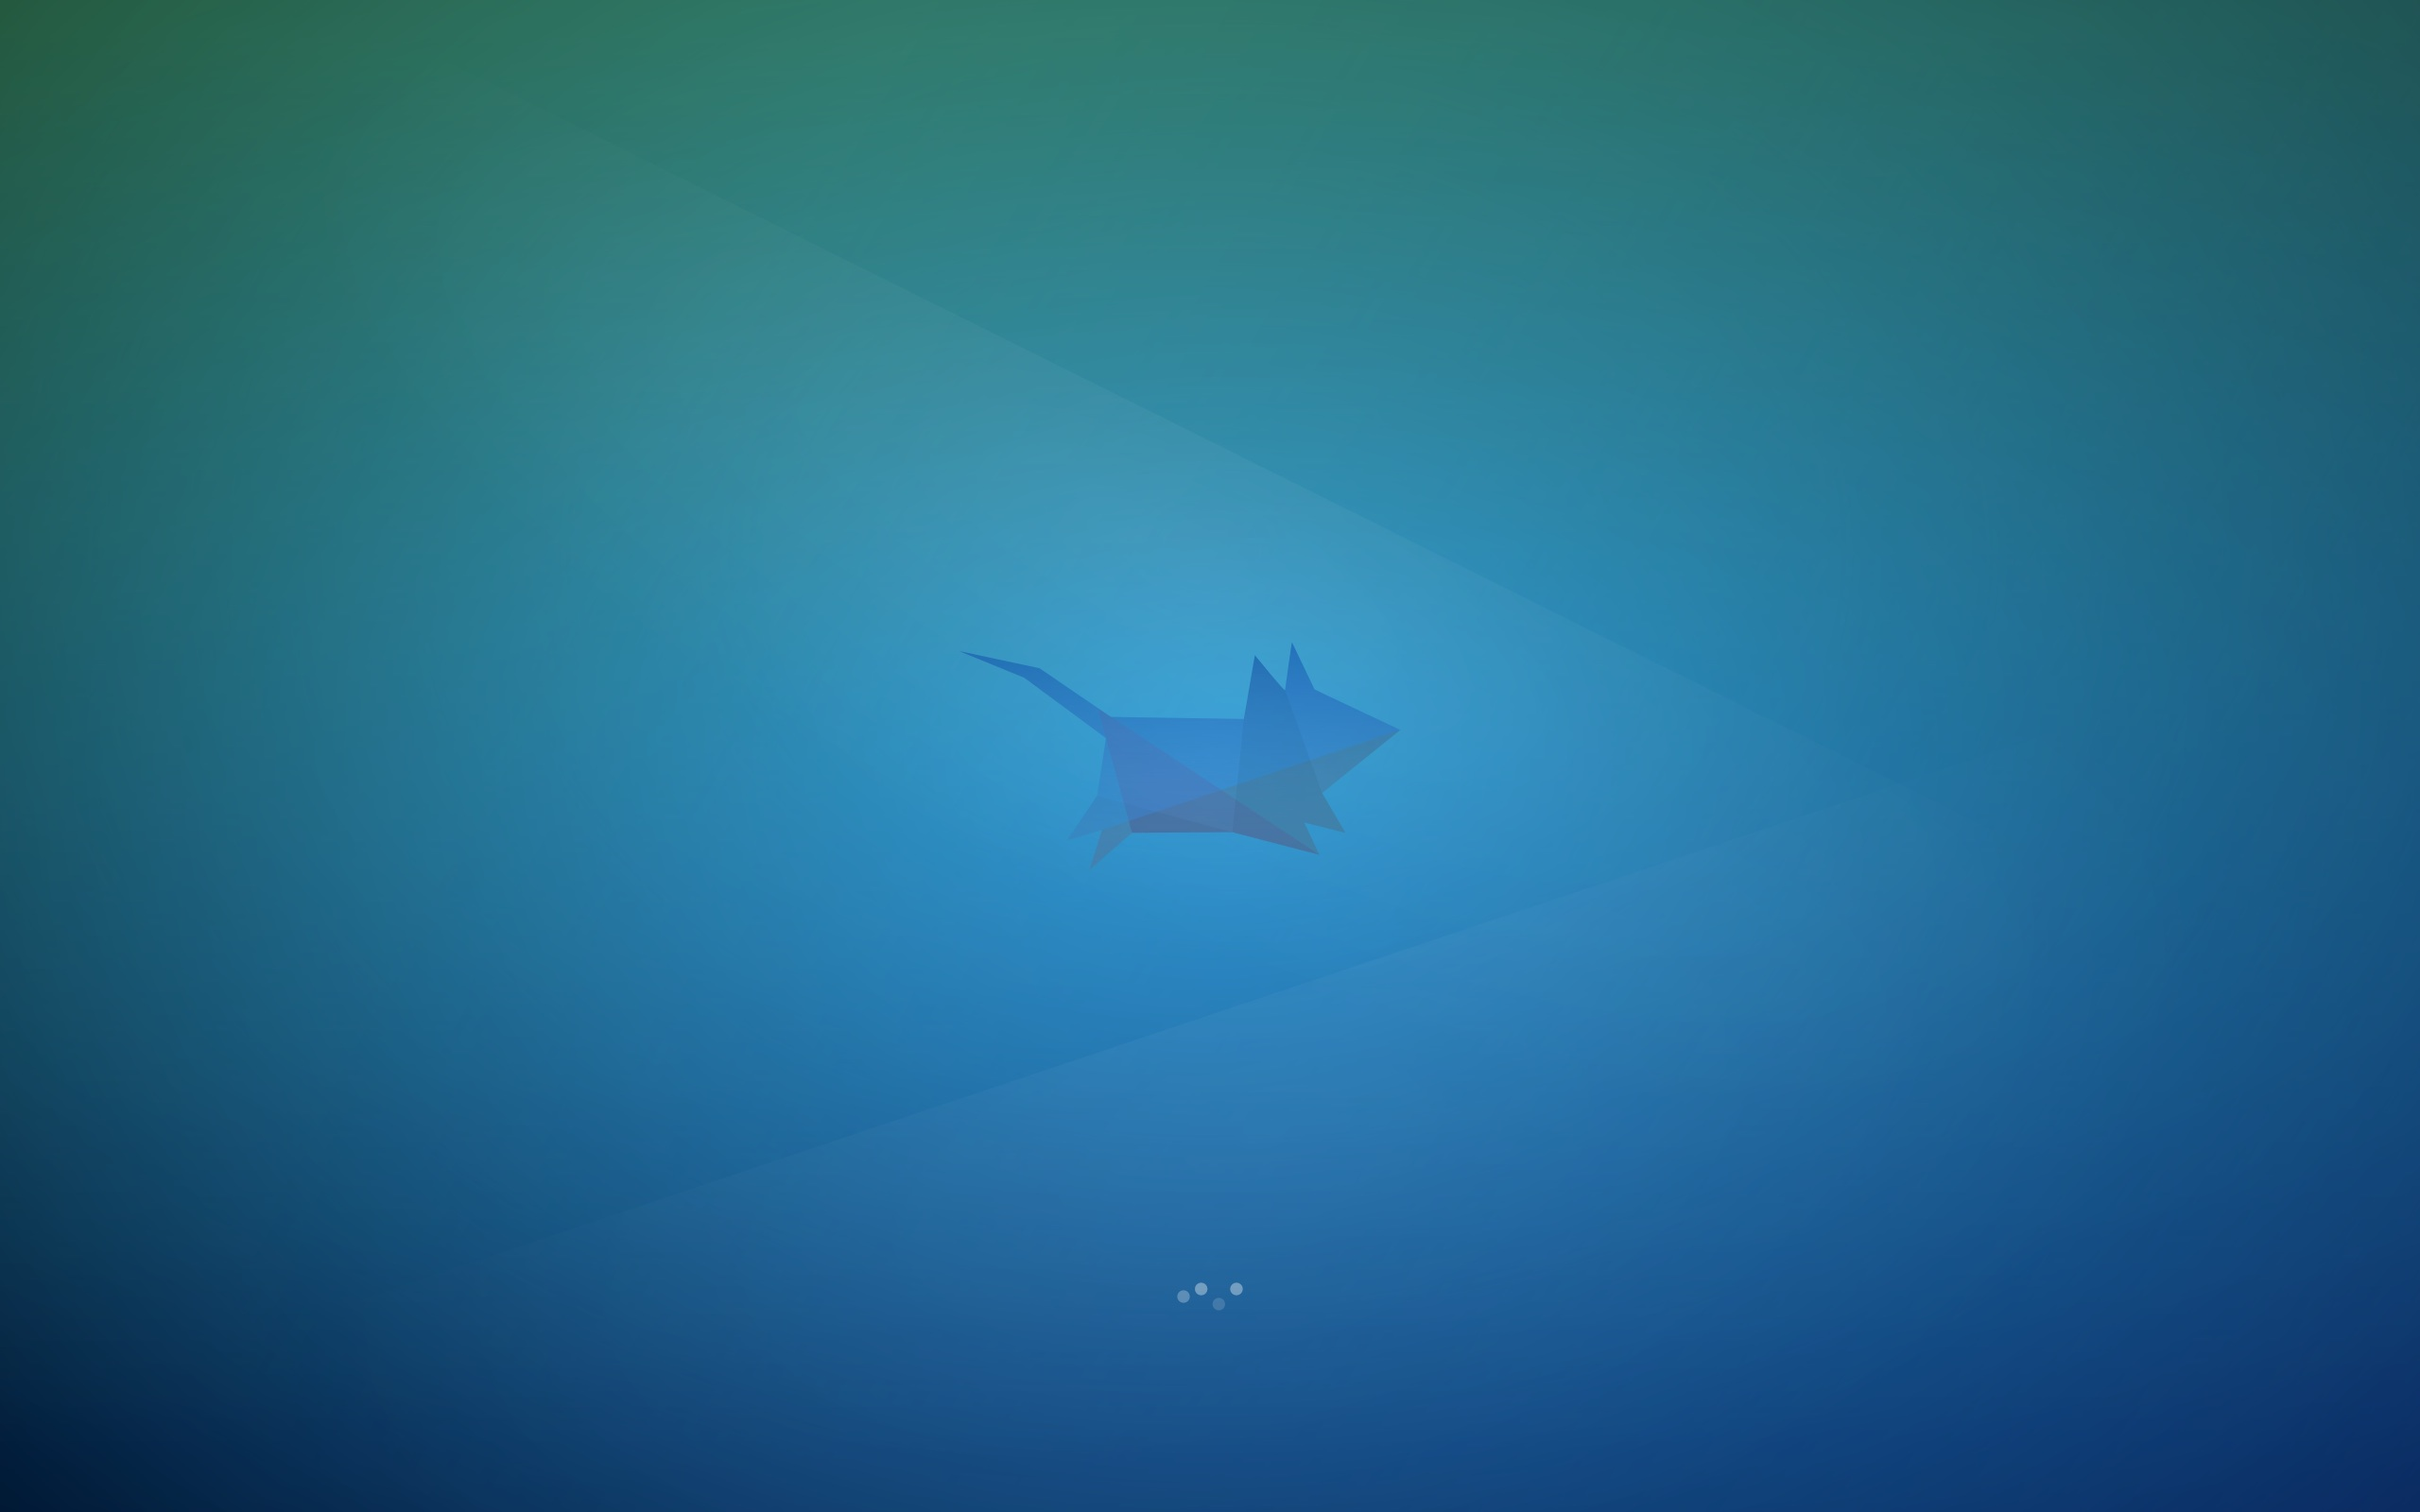 wallpaper for Xubuntu 1404 LTS and its a thing of beauty no 2560x1600